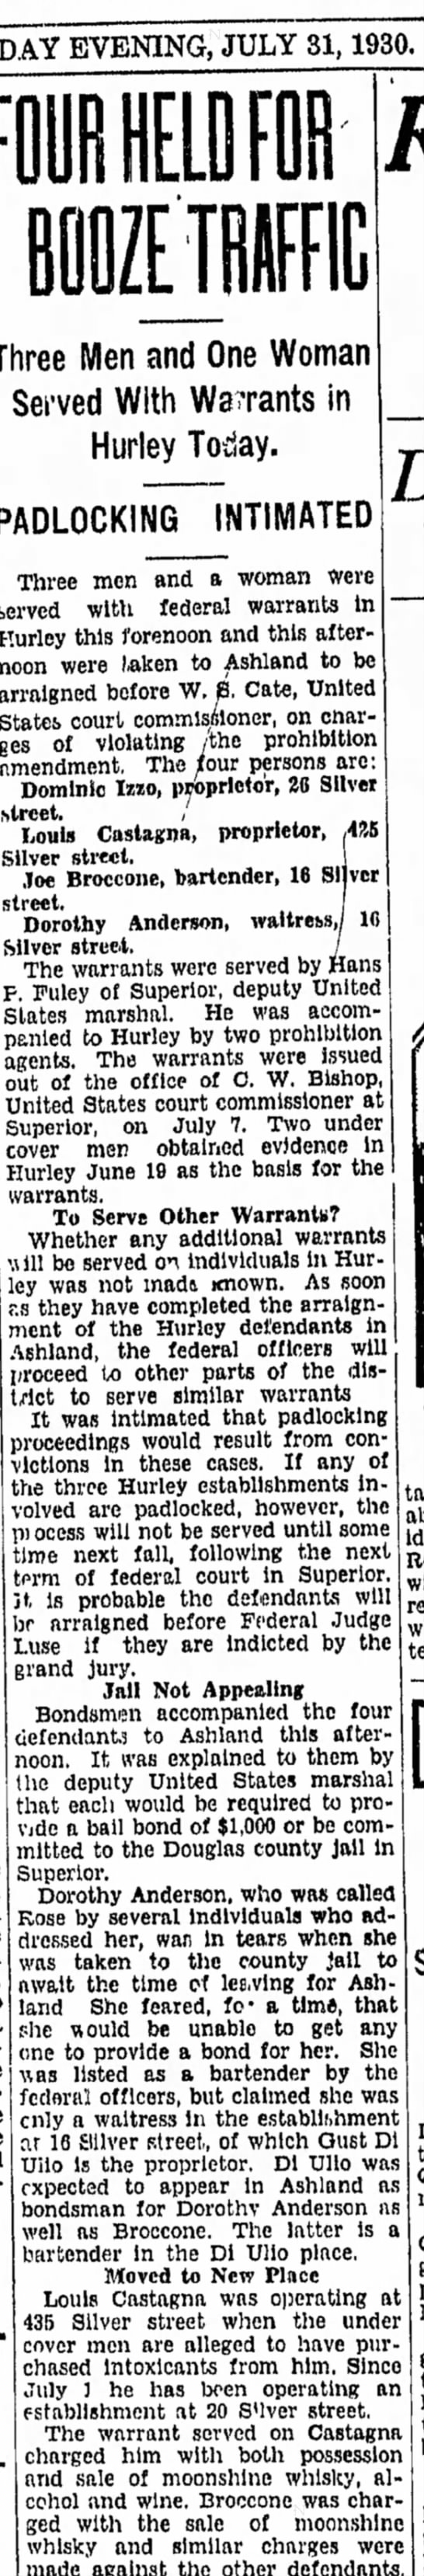 Ironwood Daily Globe, 31 July 1930, page 1 -